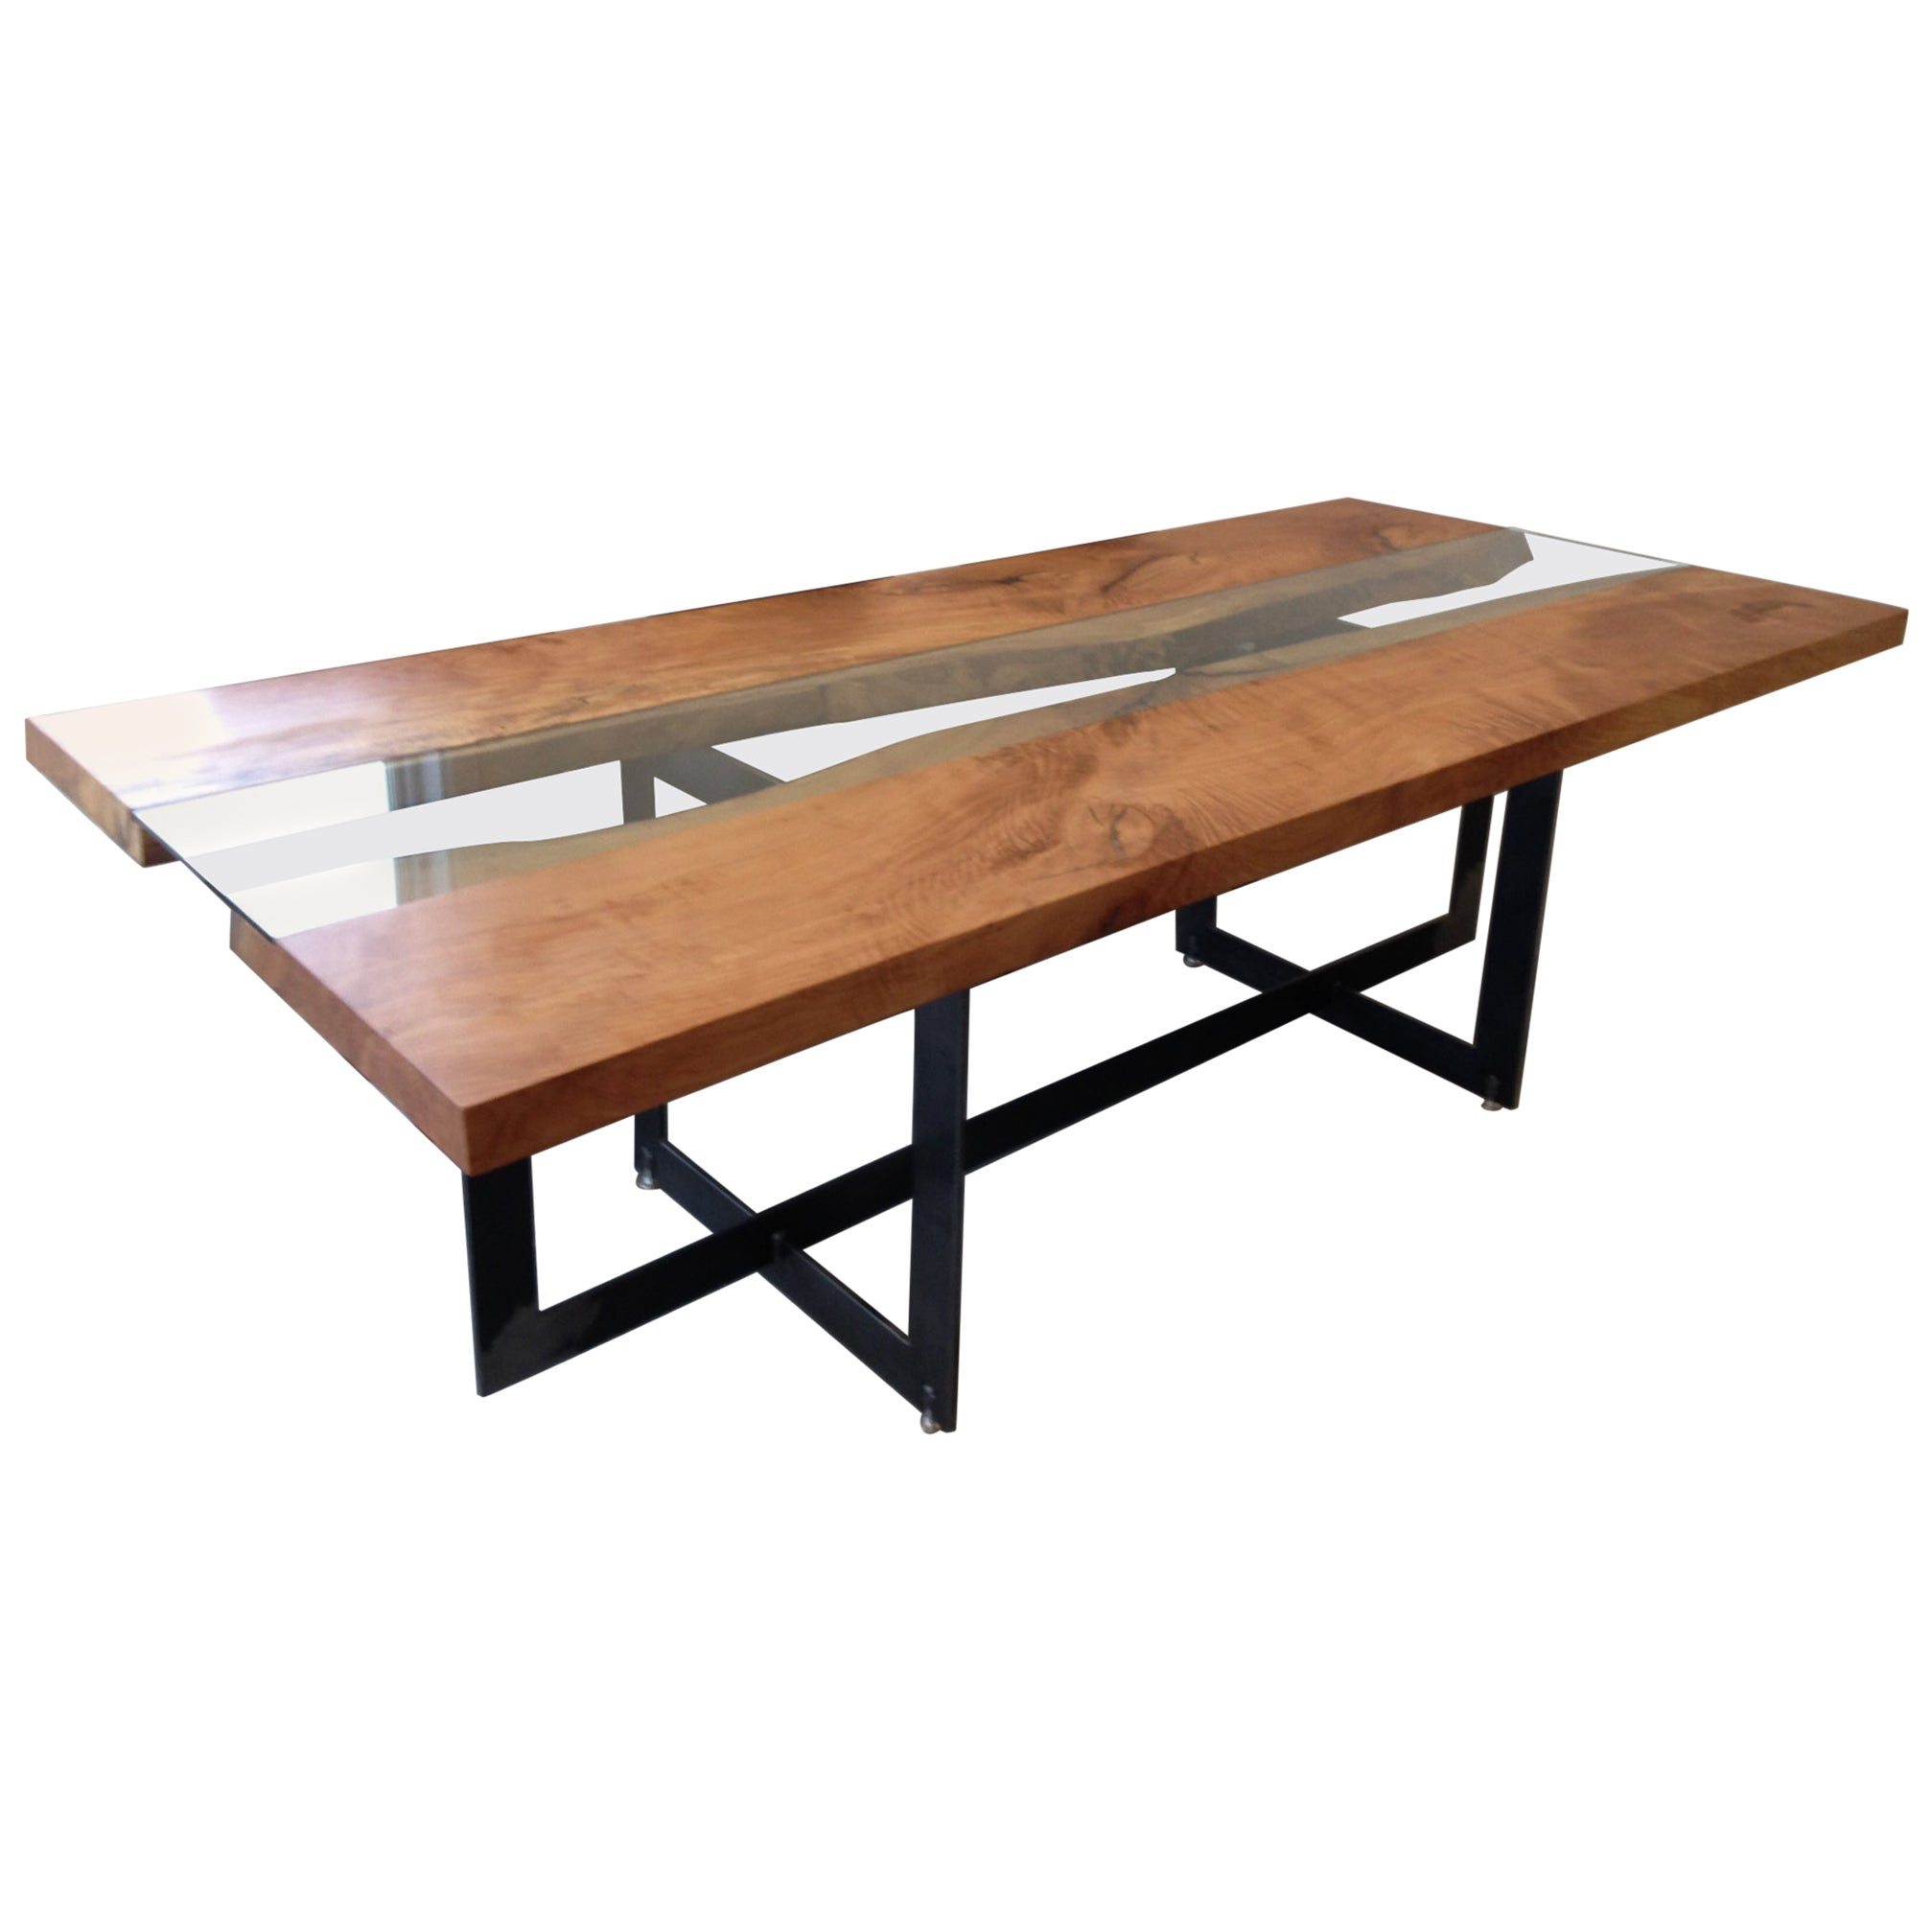 Beech Conference Table with a Central Tempered Glass